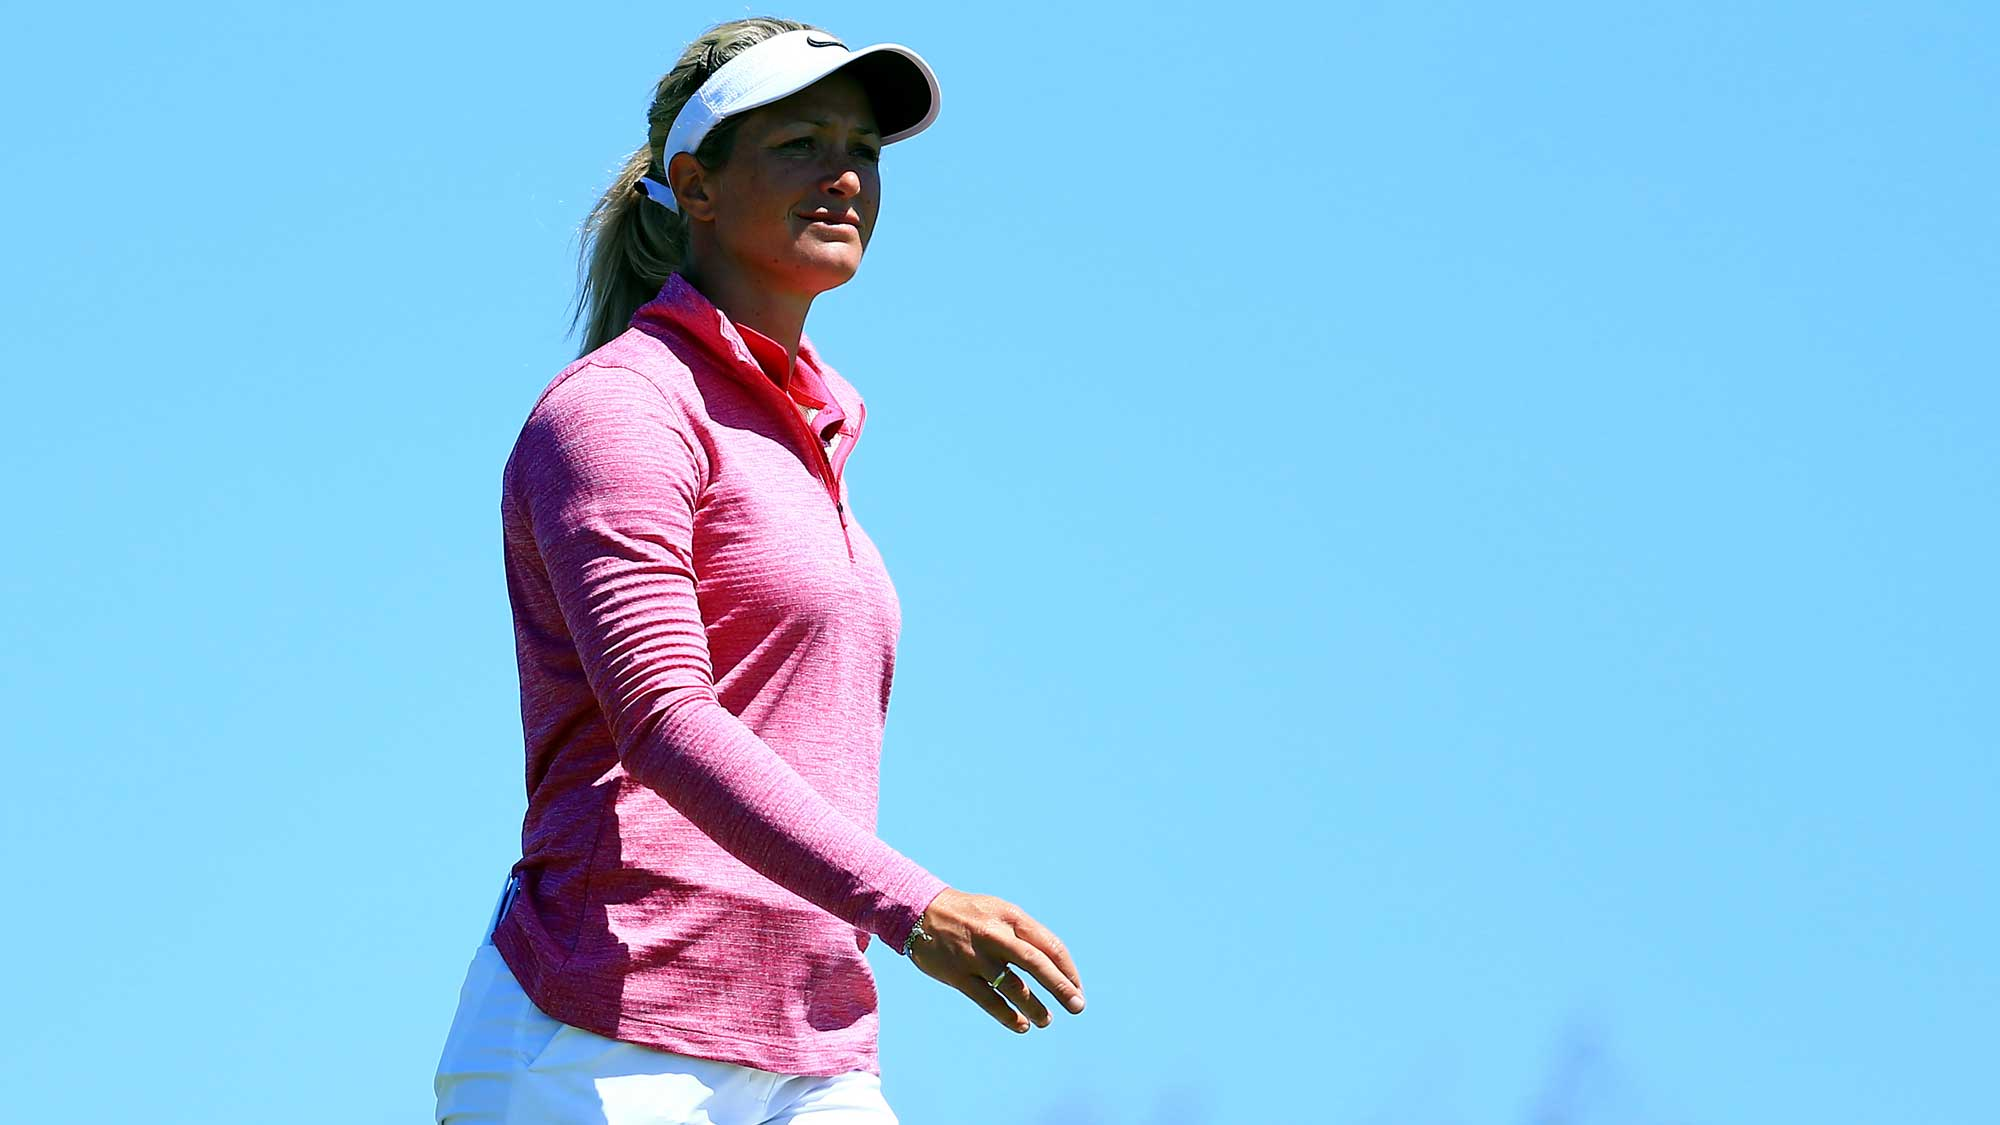 Suzann Pettersen of Norway walks down the 13th fairway during the first round of the Manulife LPGA Classic